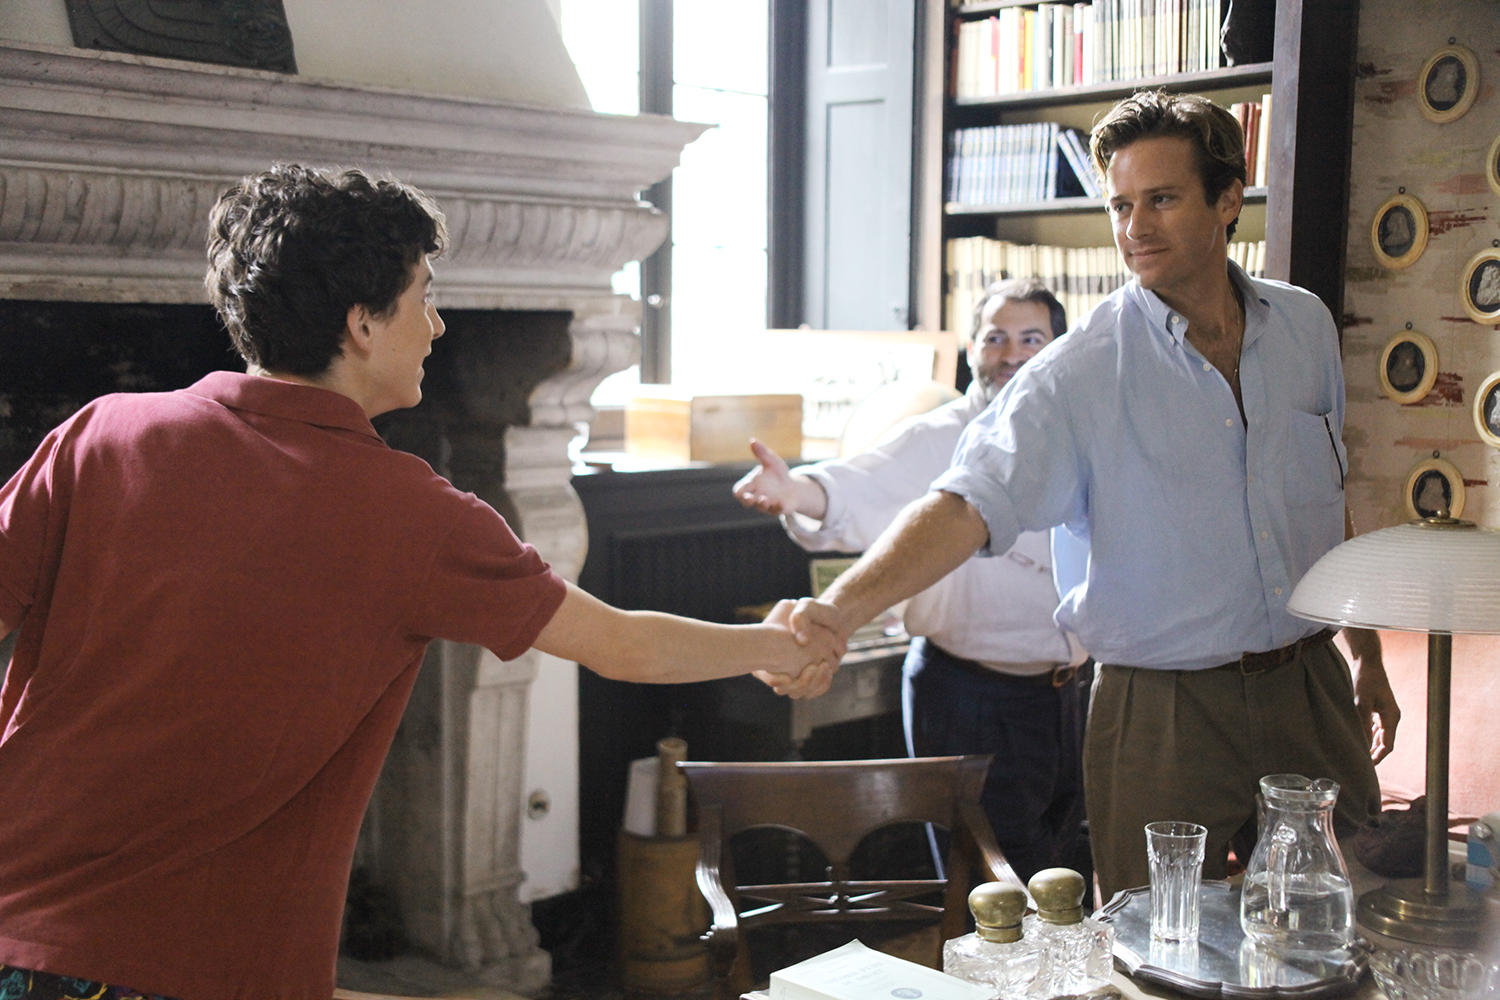 2017 LGBT Films - Call Me By Your Name, meeting